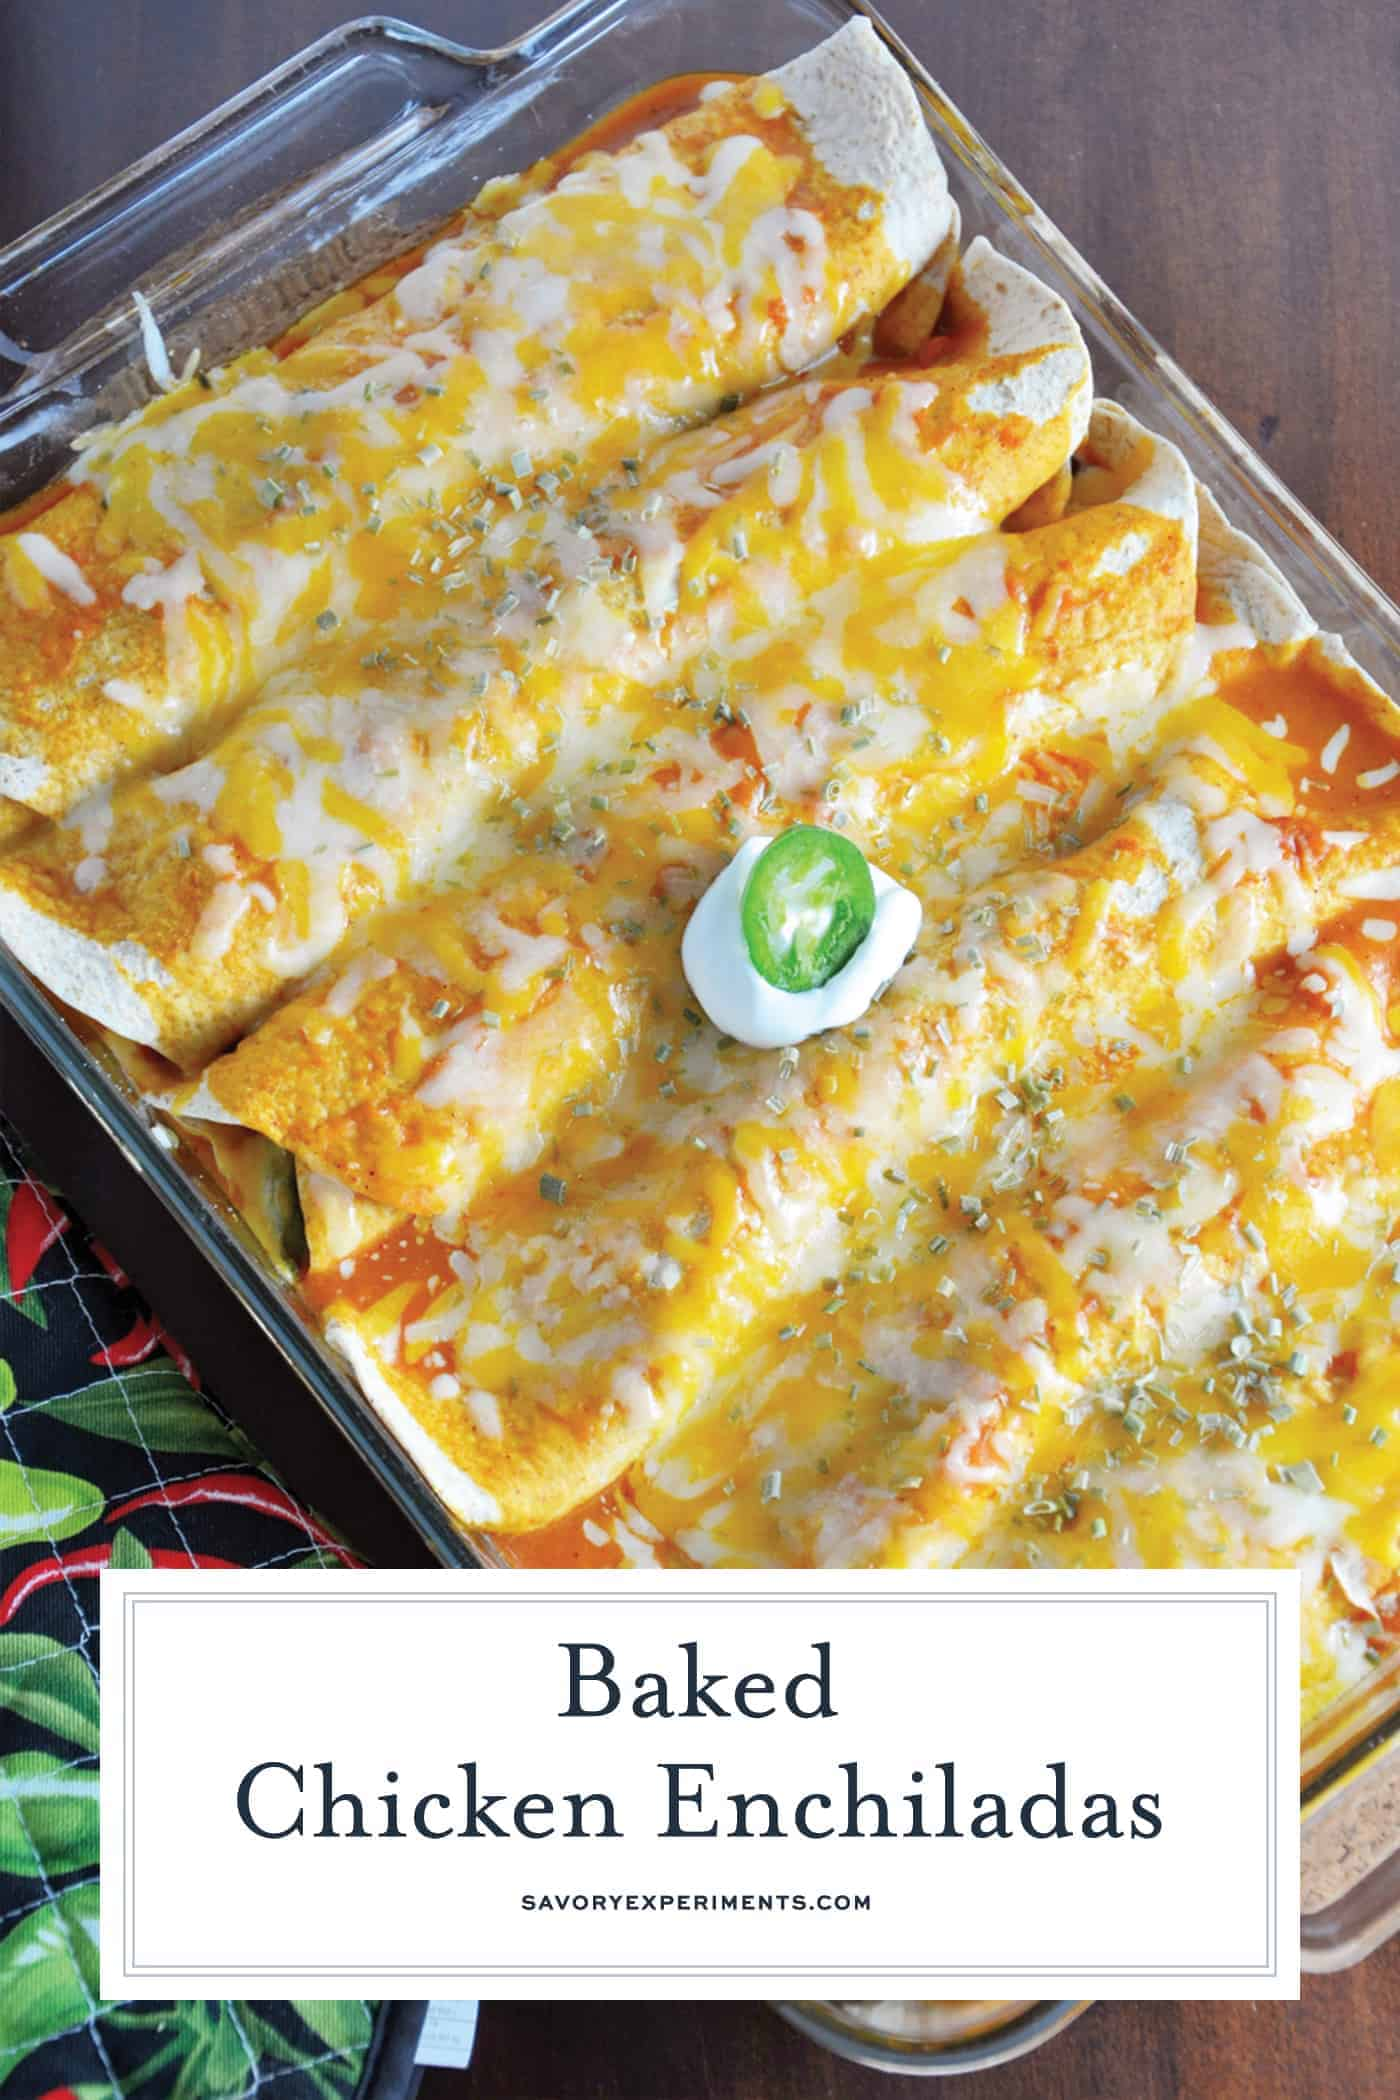 Baked Chicken Enchiladas in a Baking Dish